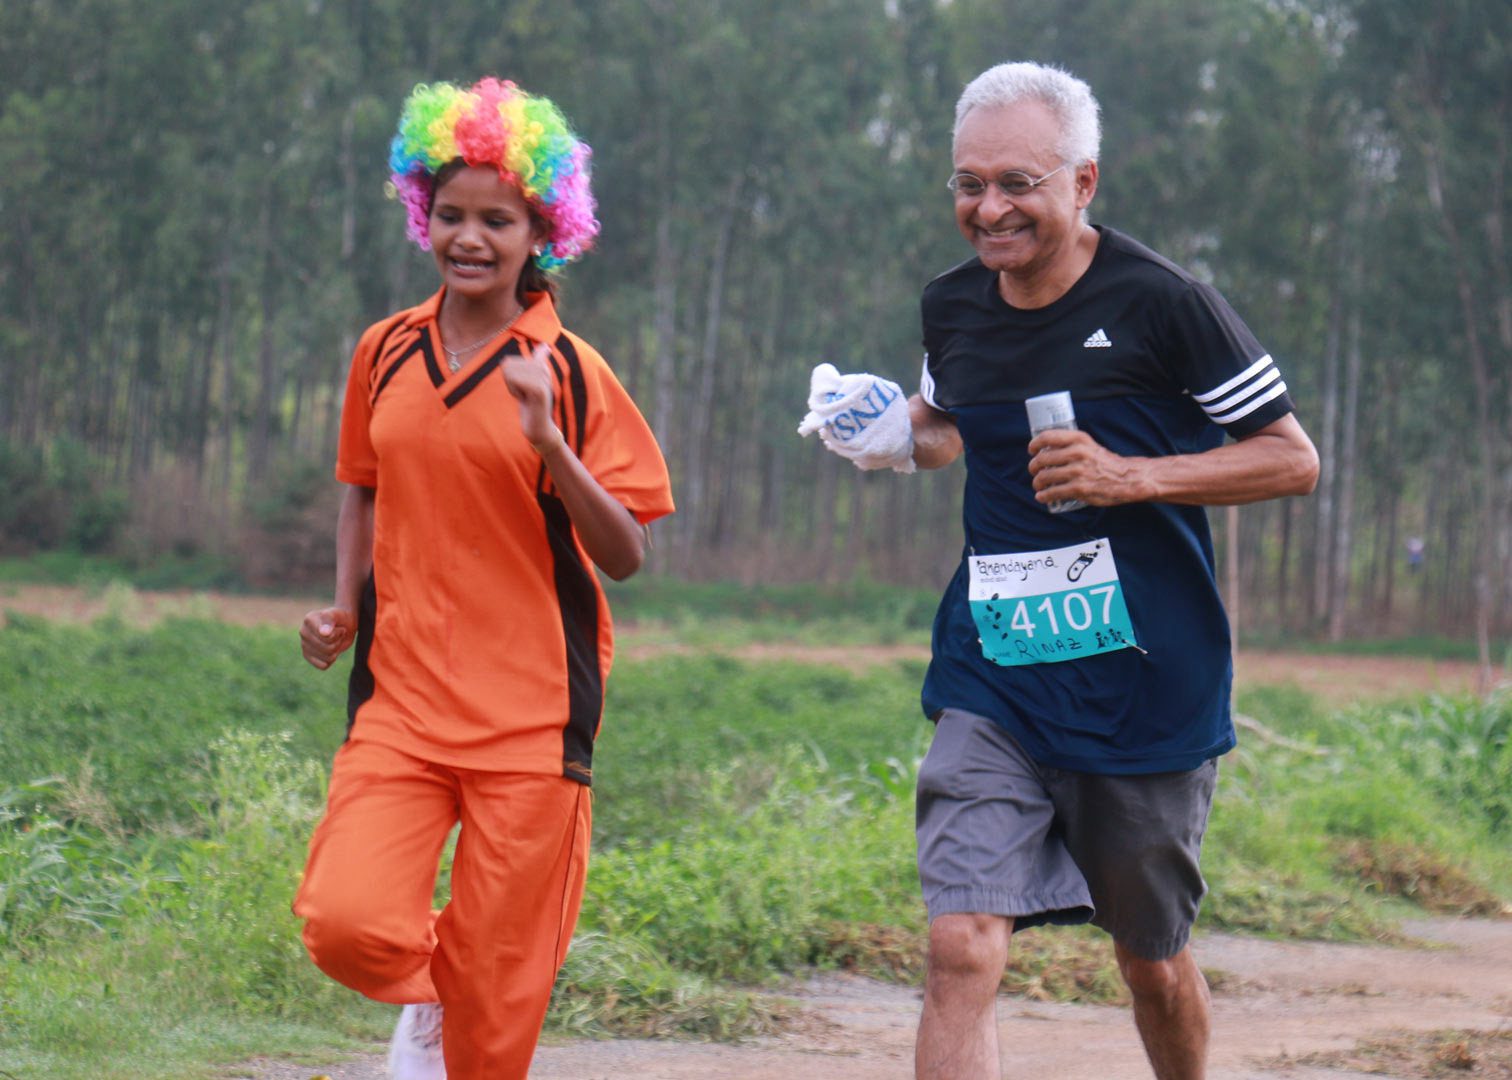 An old man being cheered by a young girl to run